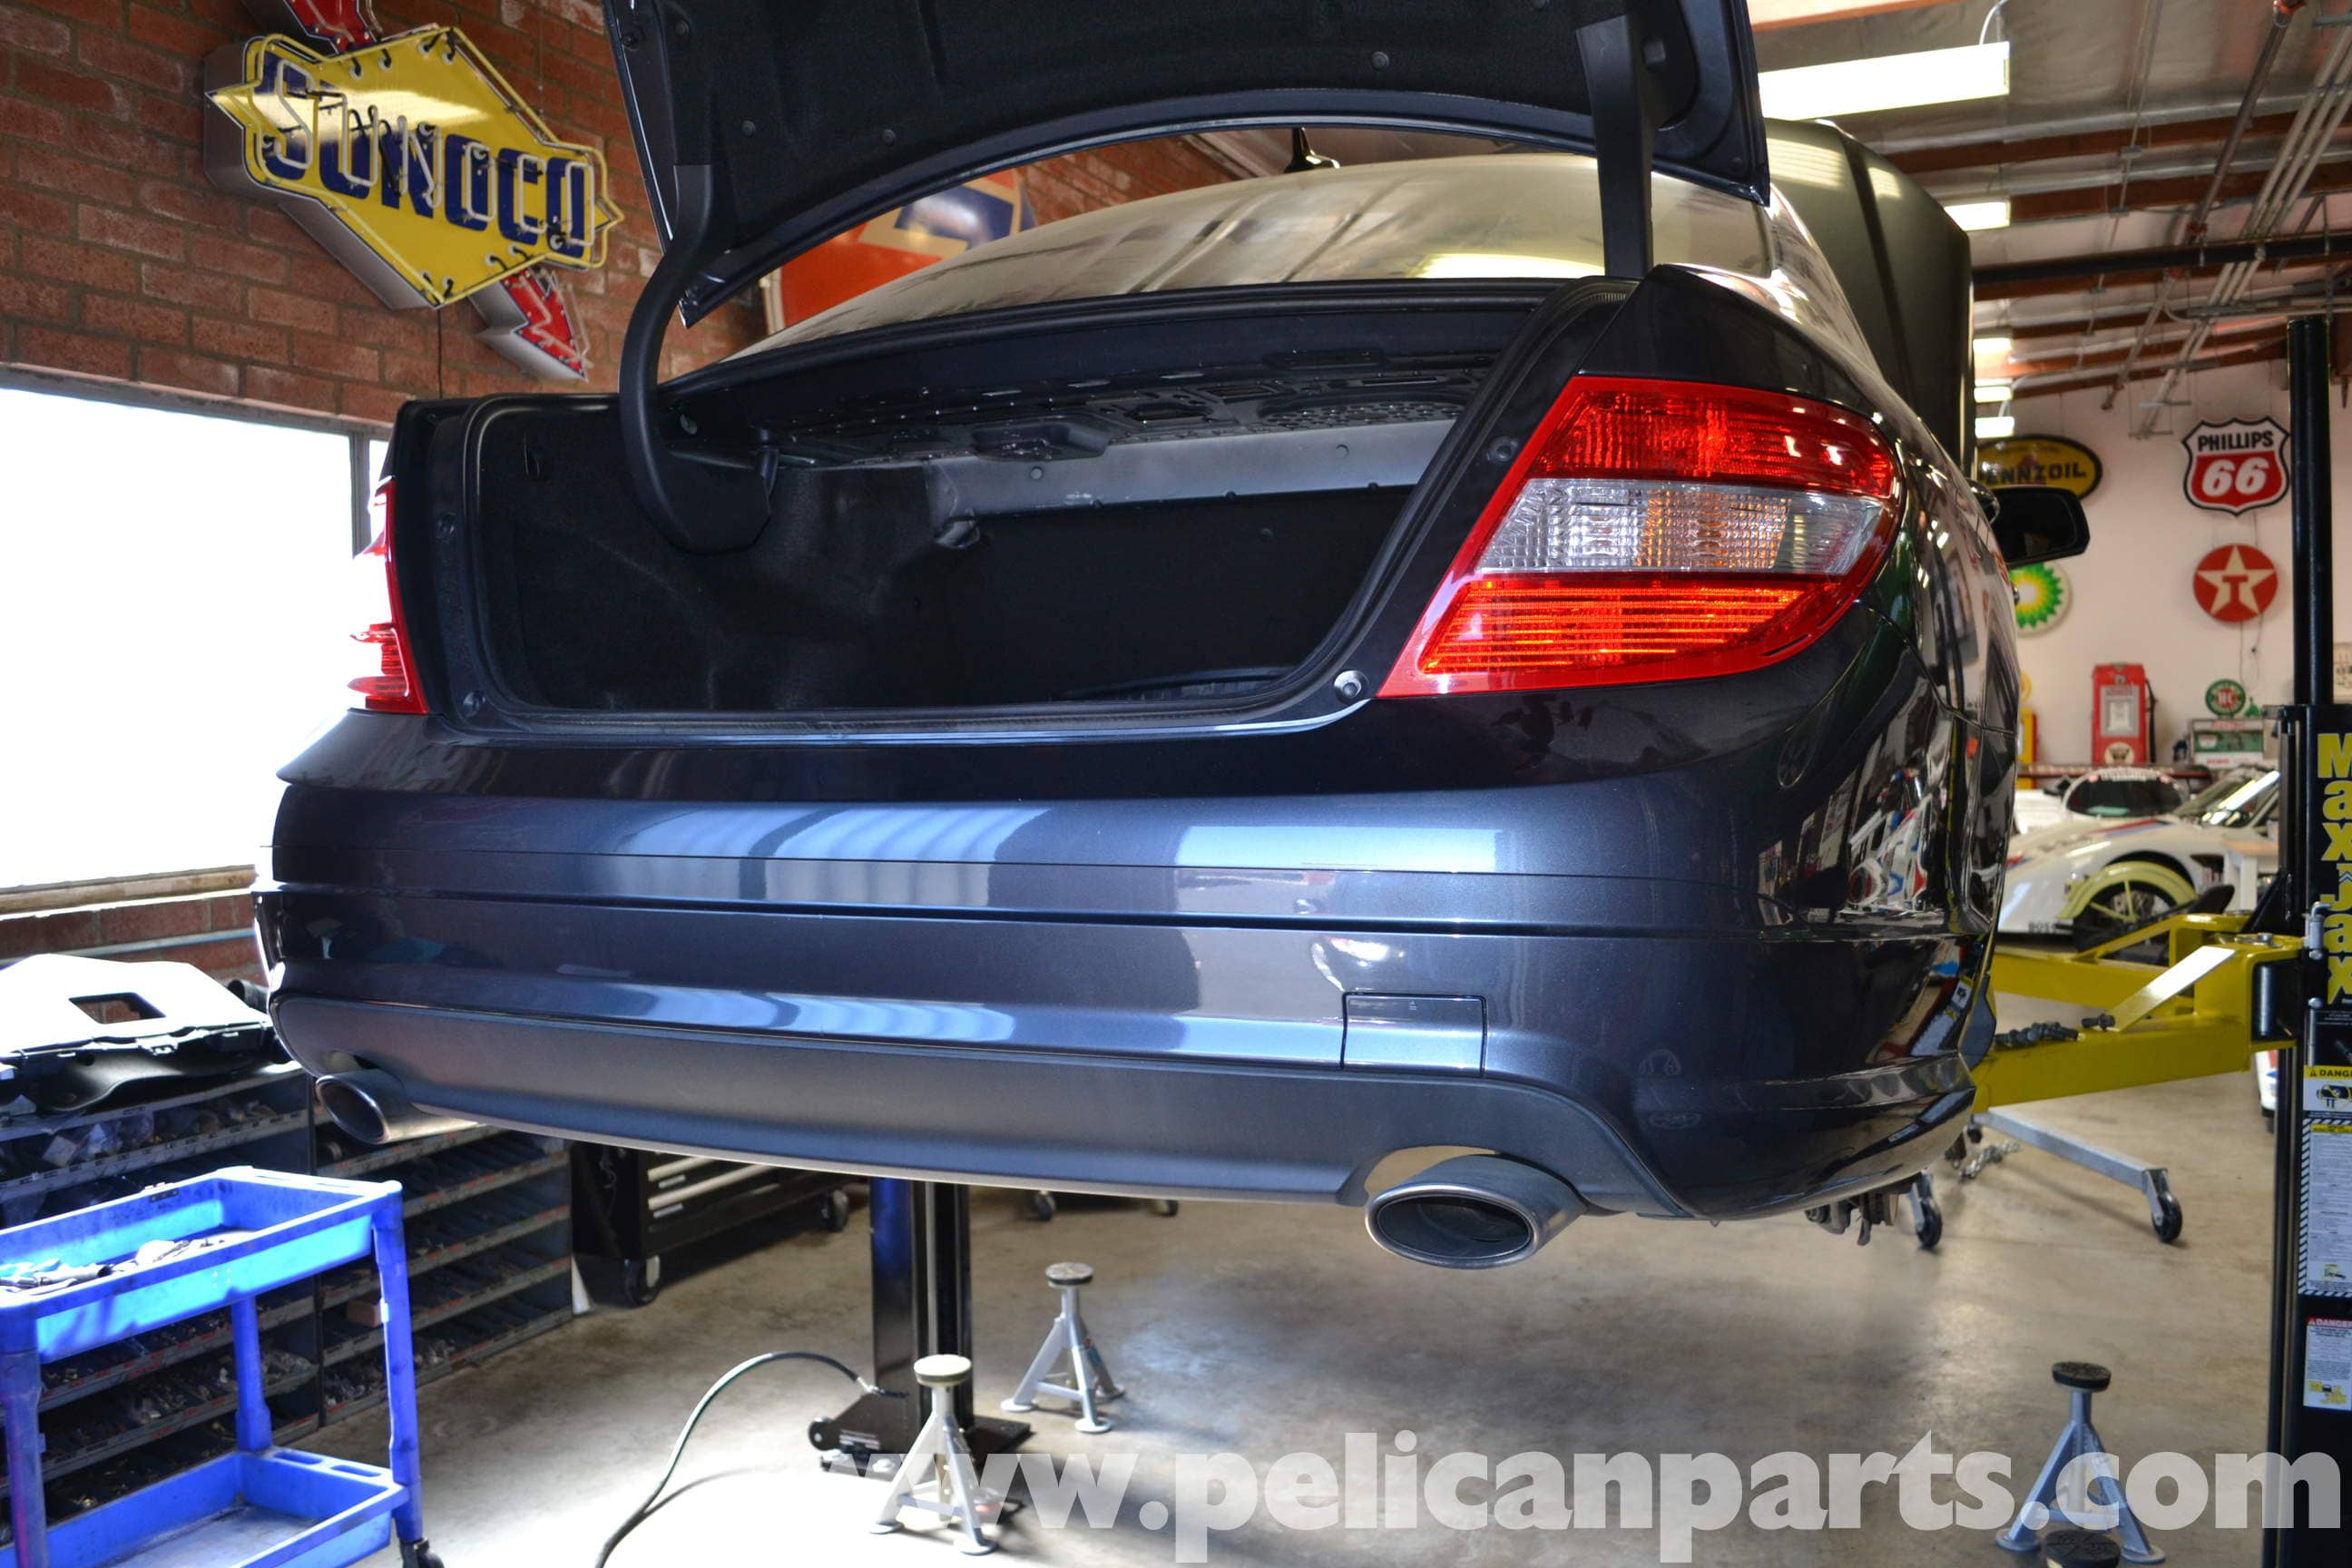 Mercedes benz w204 rear bumper cover removal 2008 2014 for Mercedes benz bumper repair